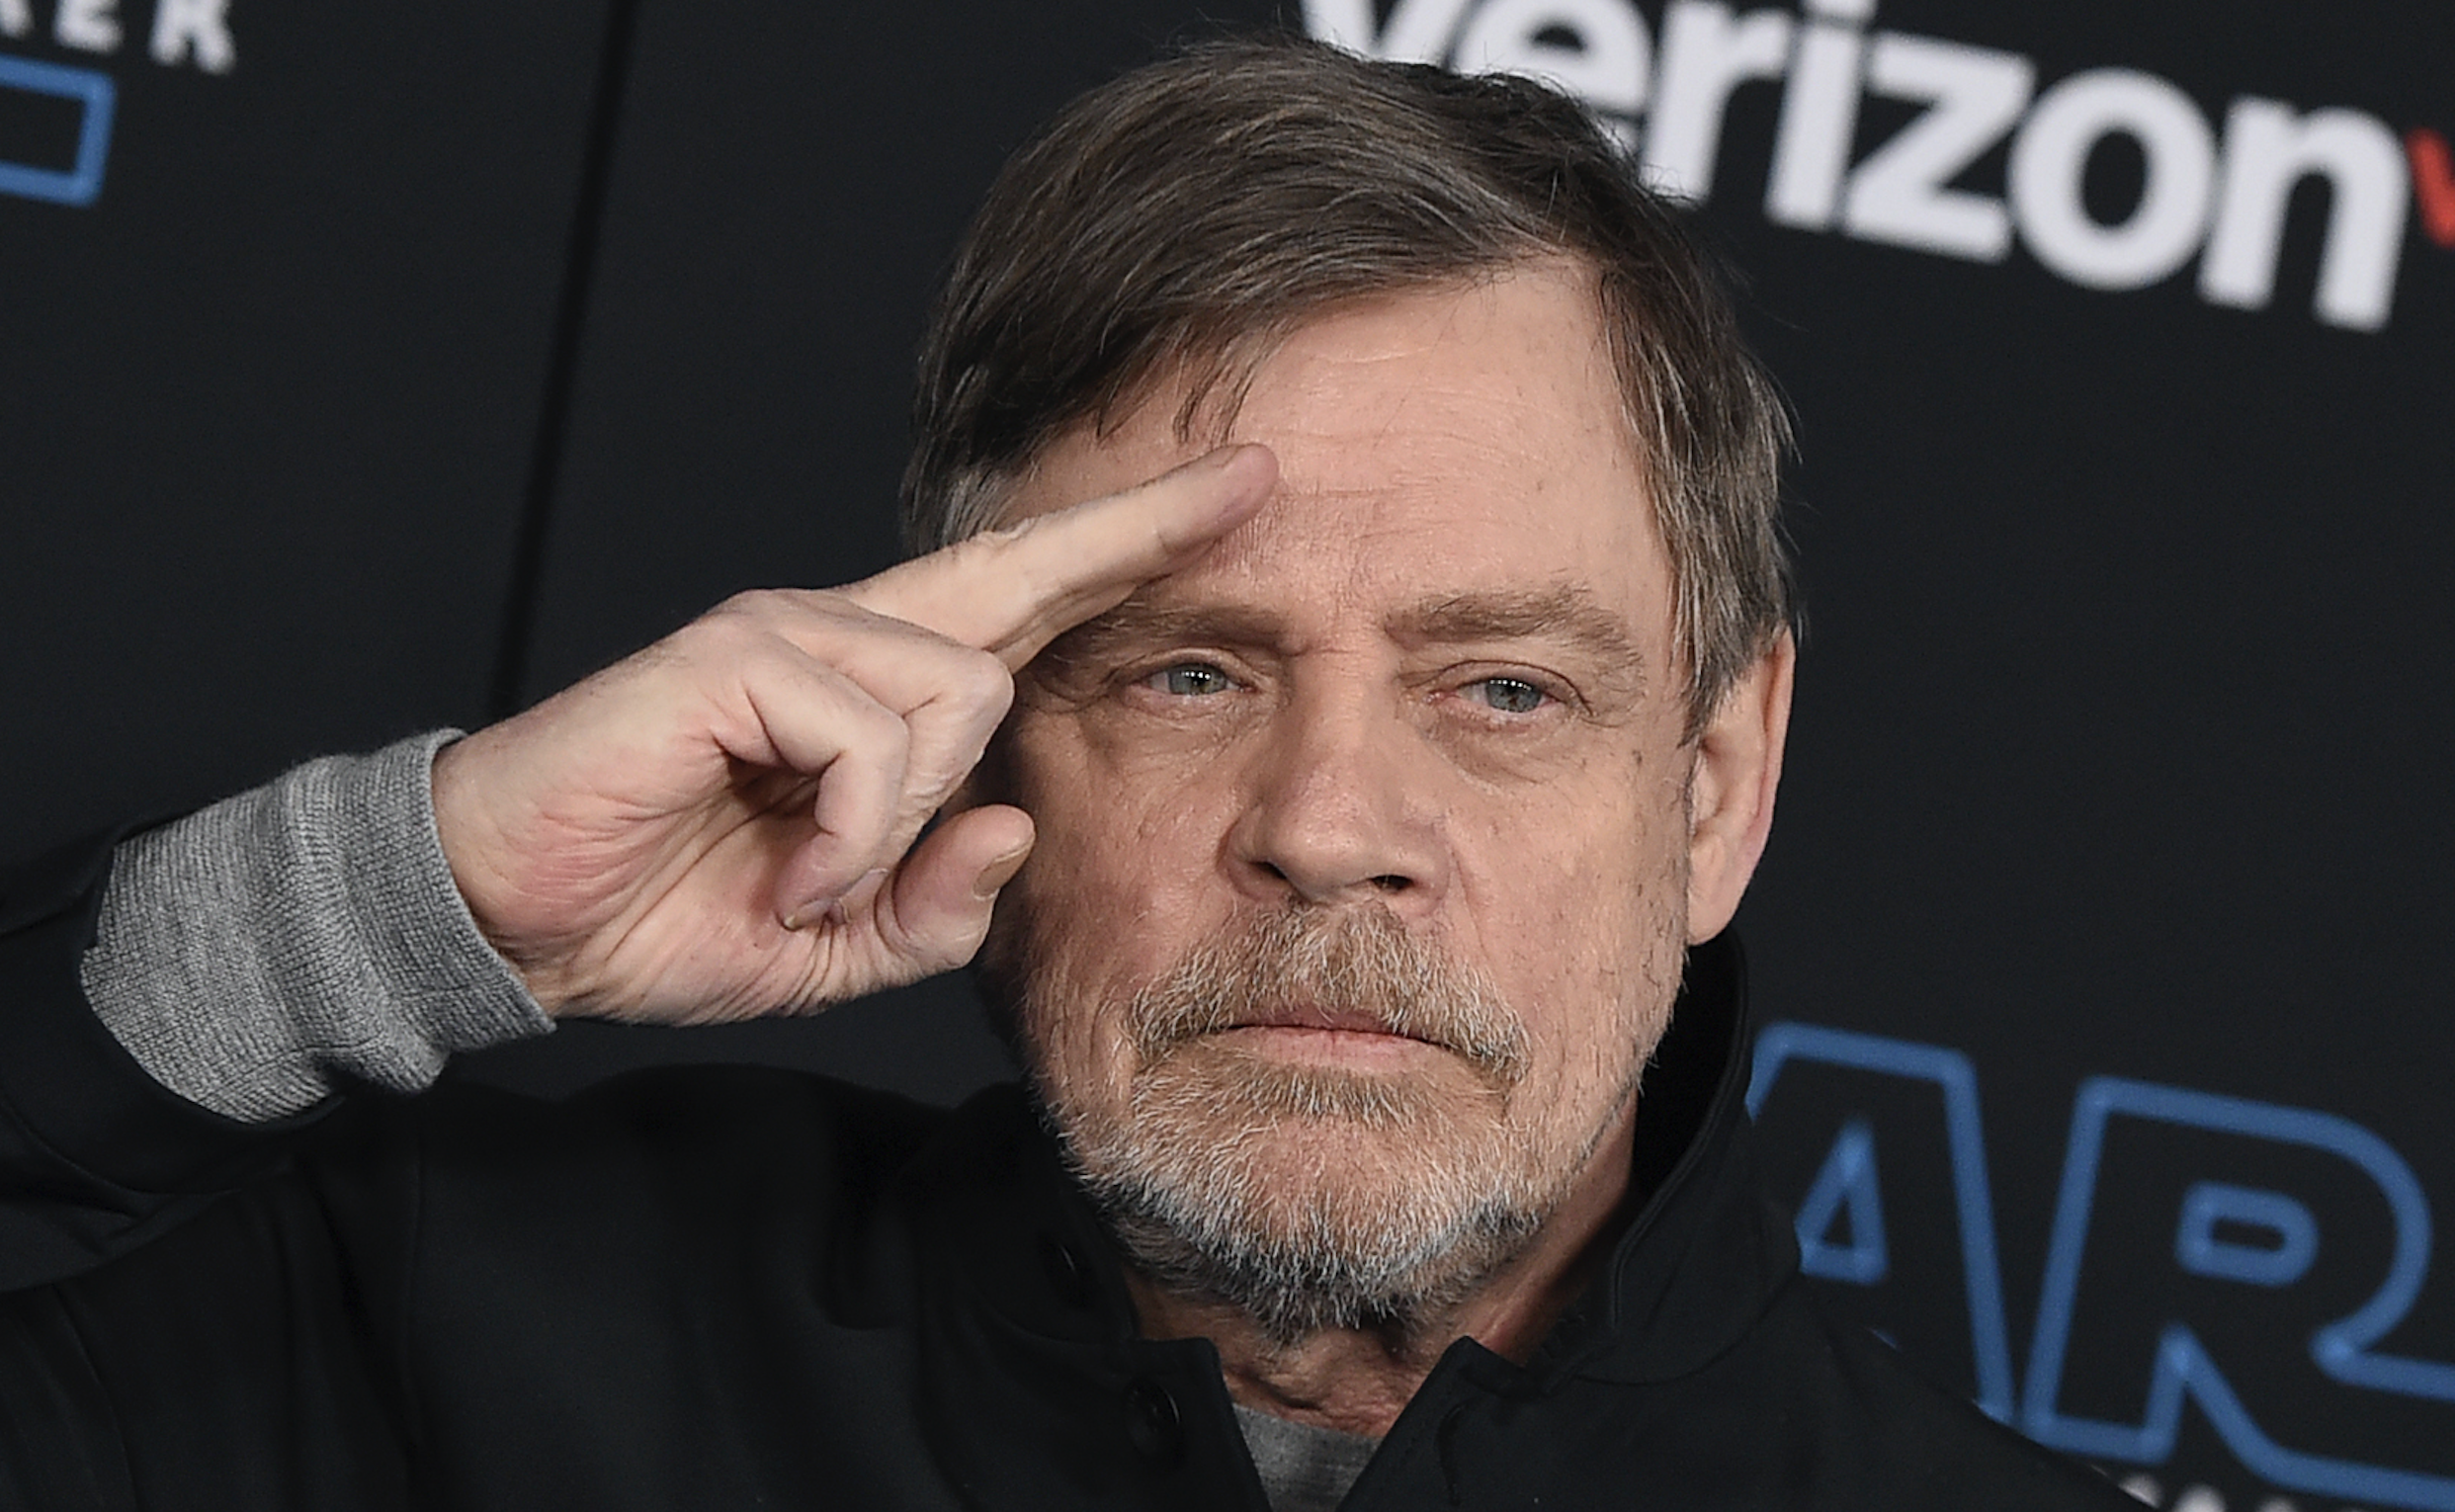 Mark Hamill, James Gunn, William Shatner Skewer Space Force for Ripping Off Their Franchises